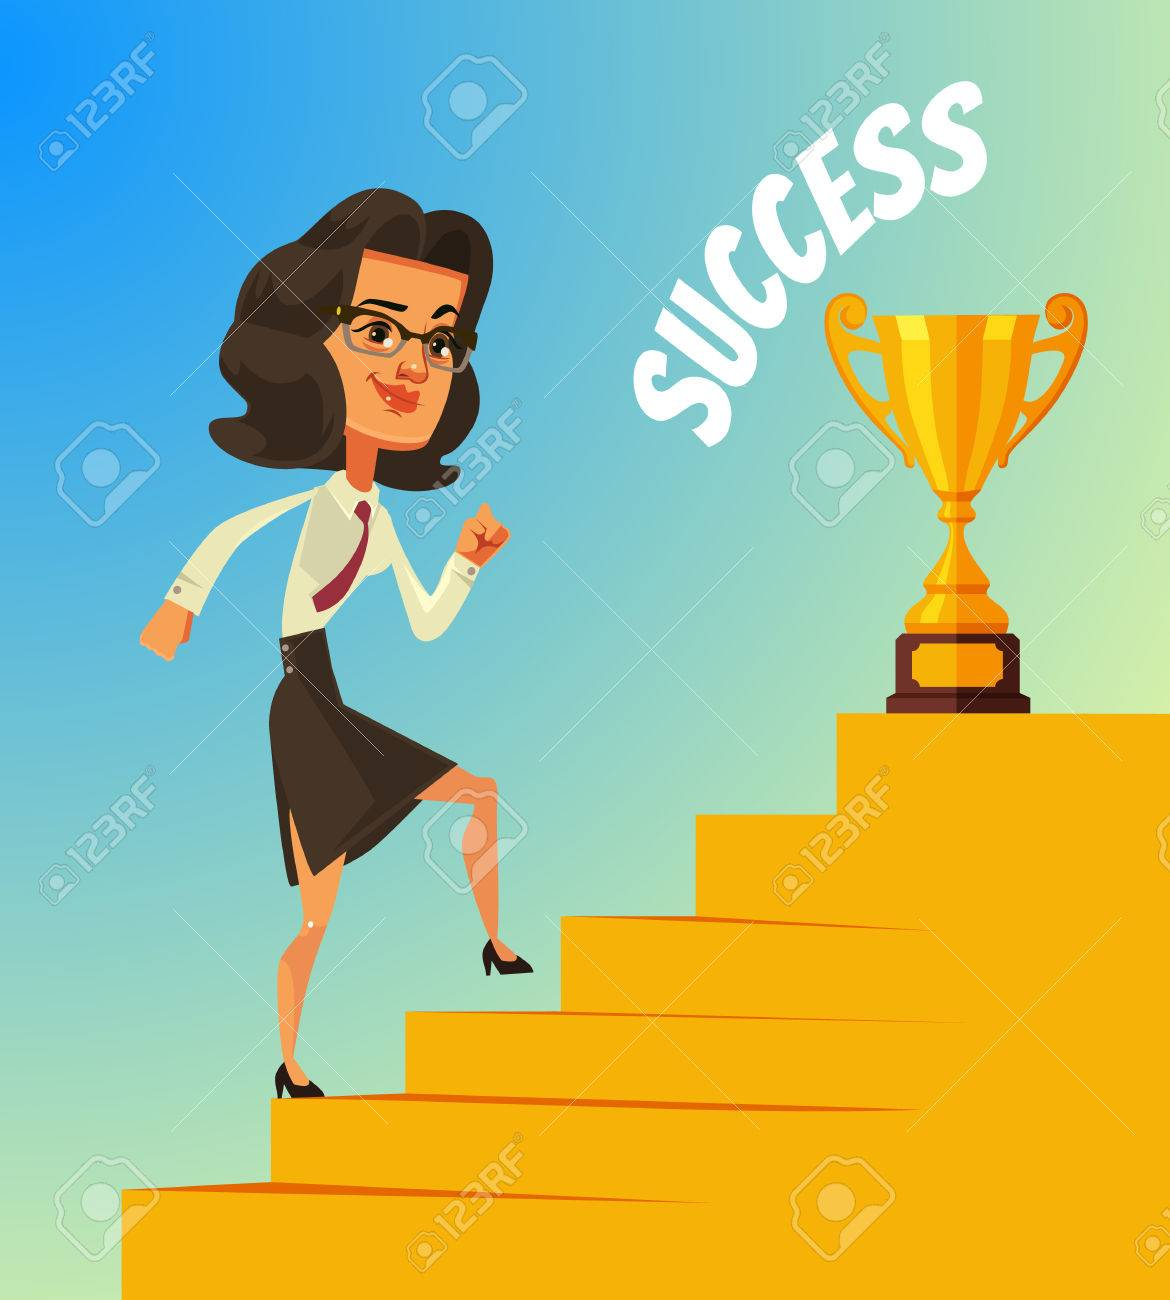 Happy Smiling Business Woman Character Climbing Stairs To Success Royalty Free Cliparts Vectors And Stock Illustration Image 76389701